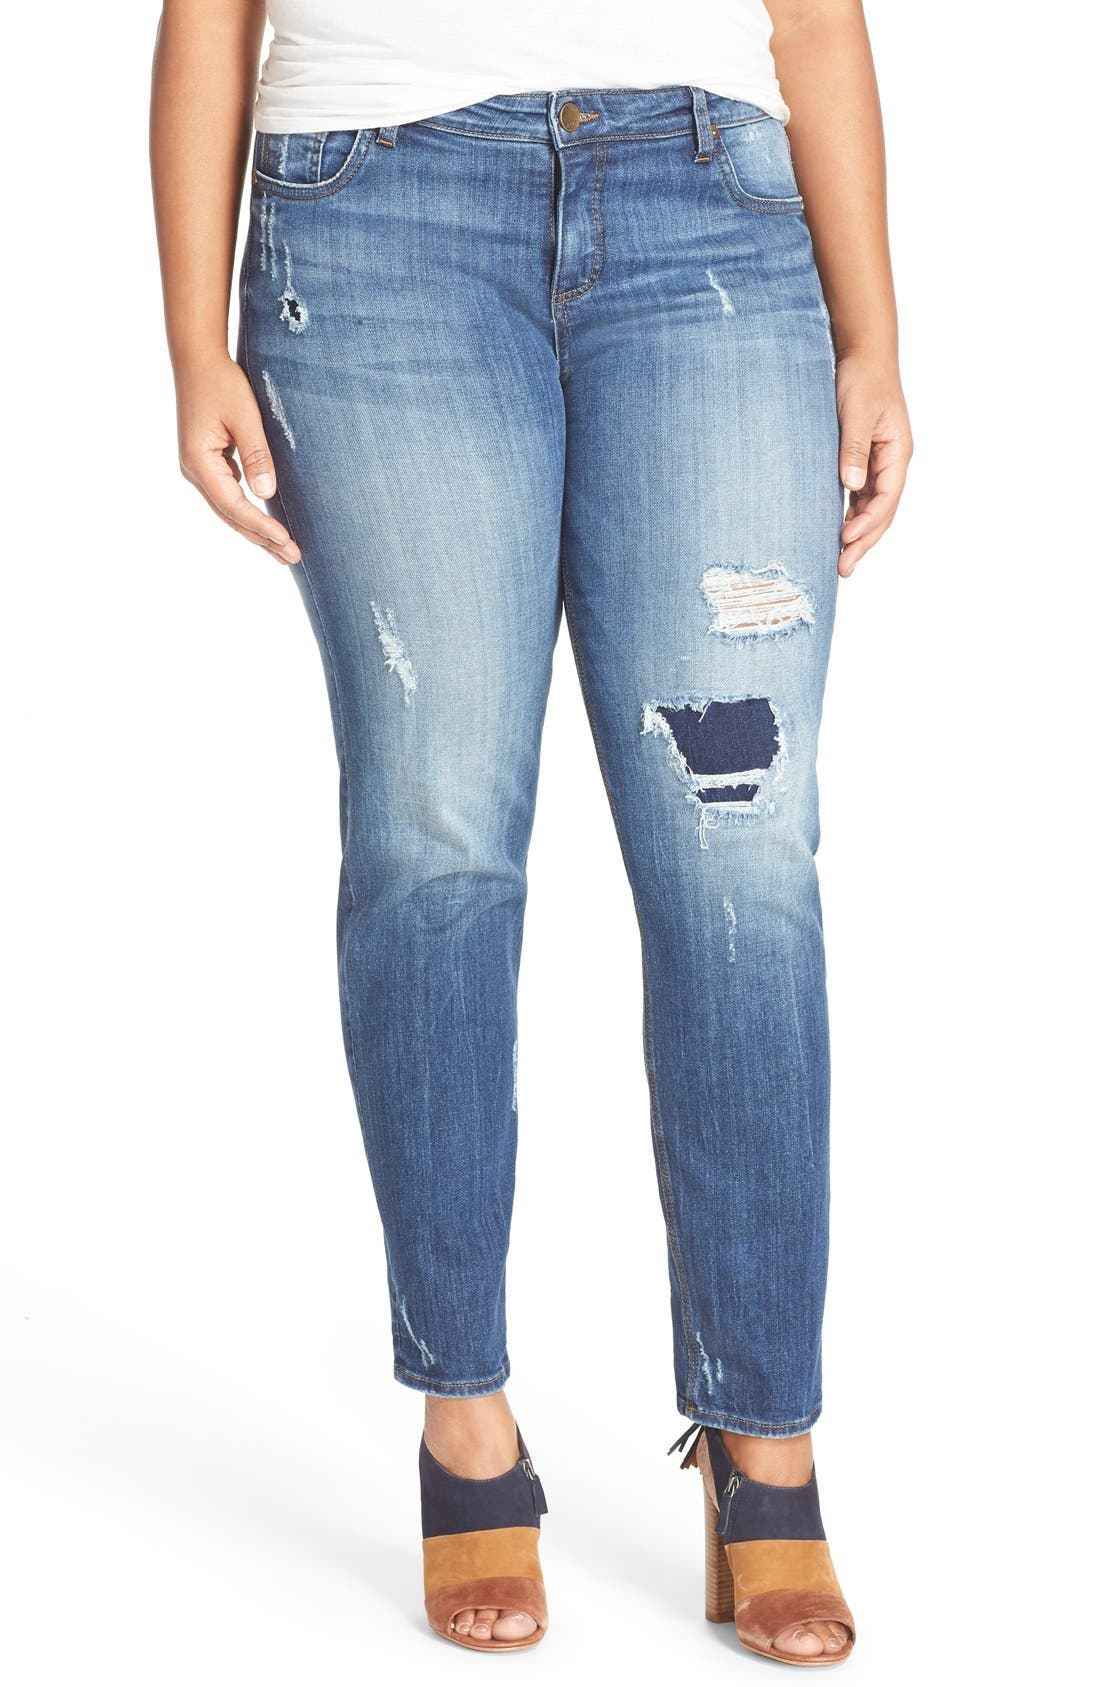 KUT FROM THE KLOTH Distressed Slouchy Boyfriend Jeans